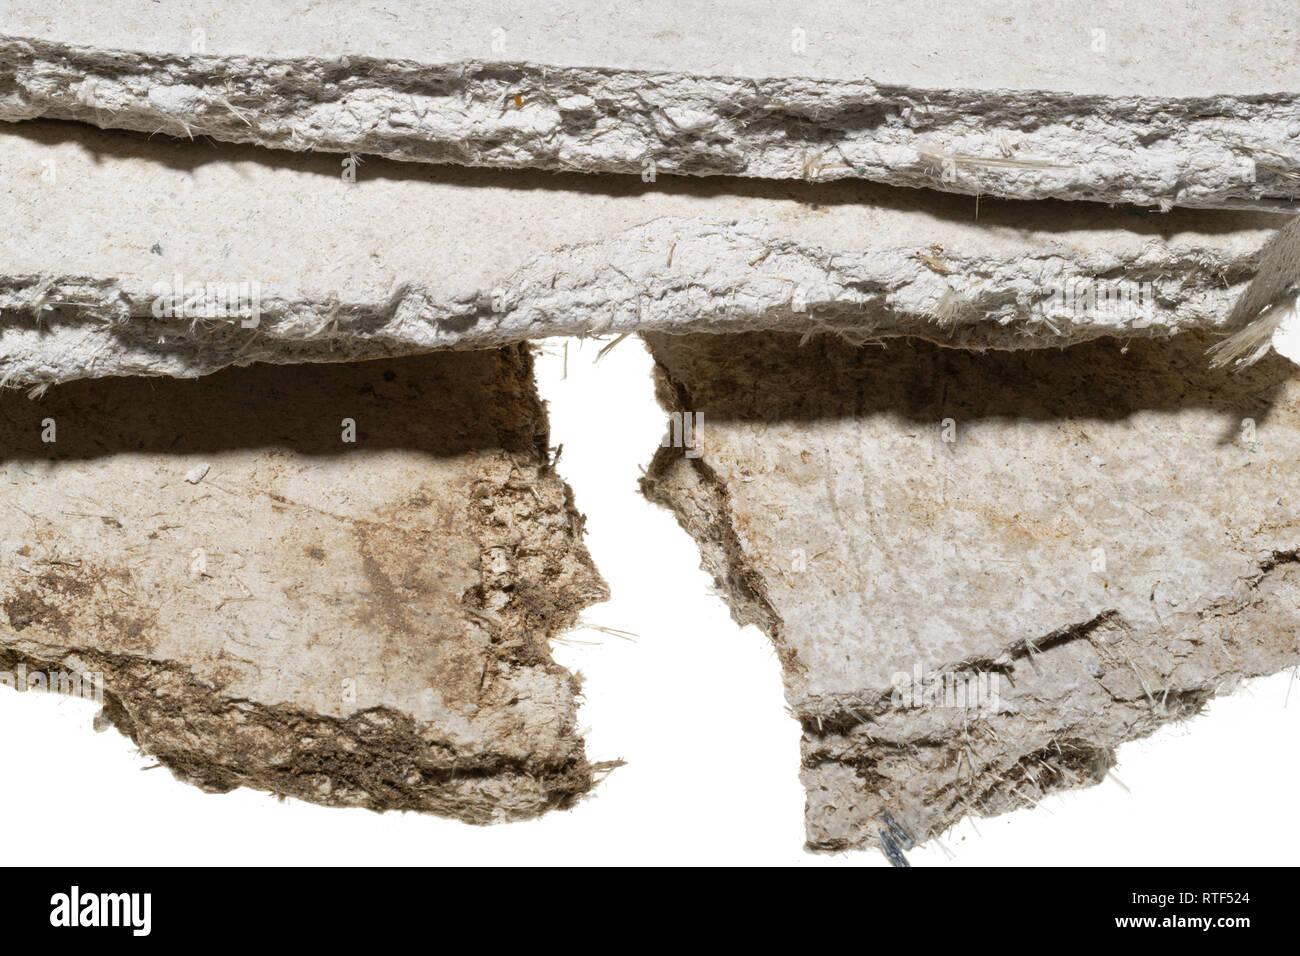 Asbestos sheets. Old building material with dangerous fibres. Low grade risk. Asbestos cement board - Stock Image